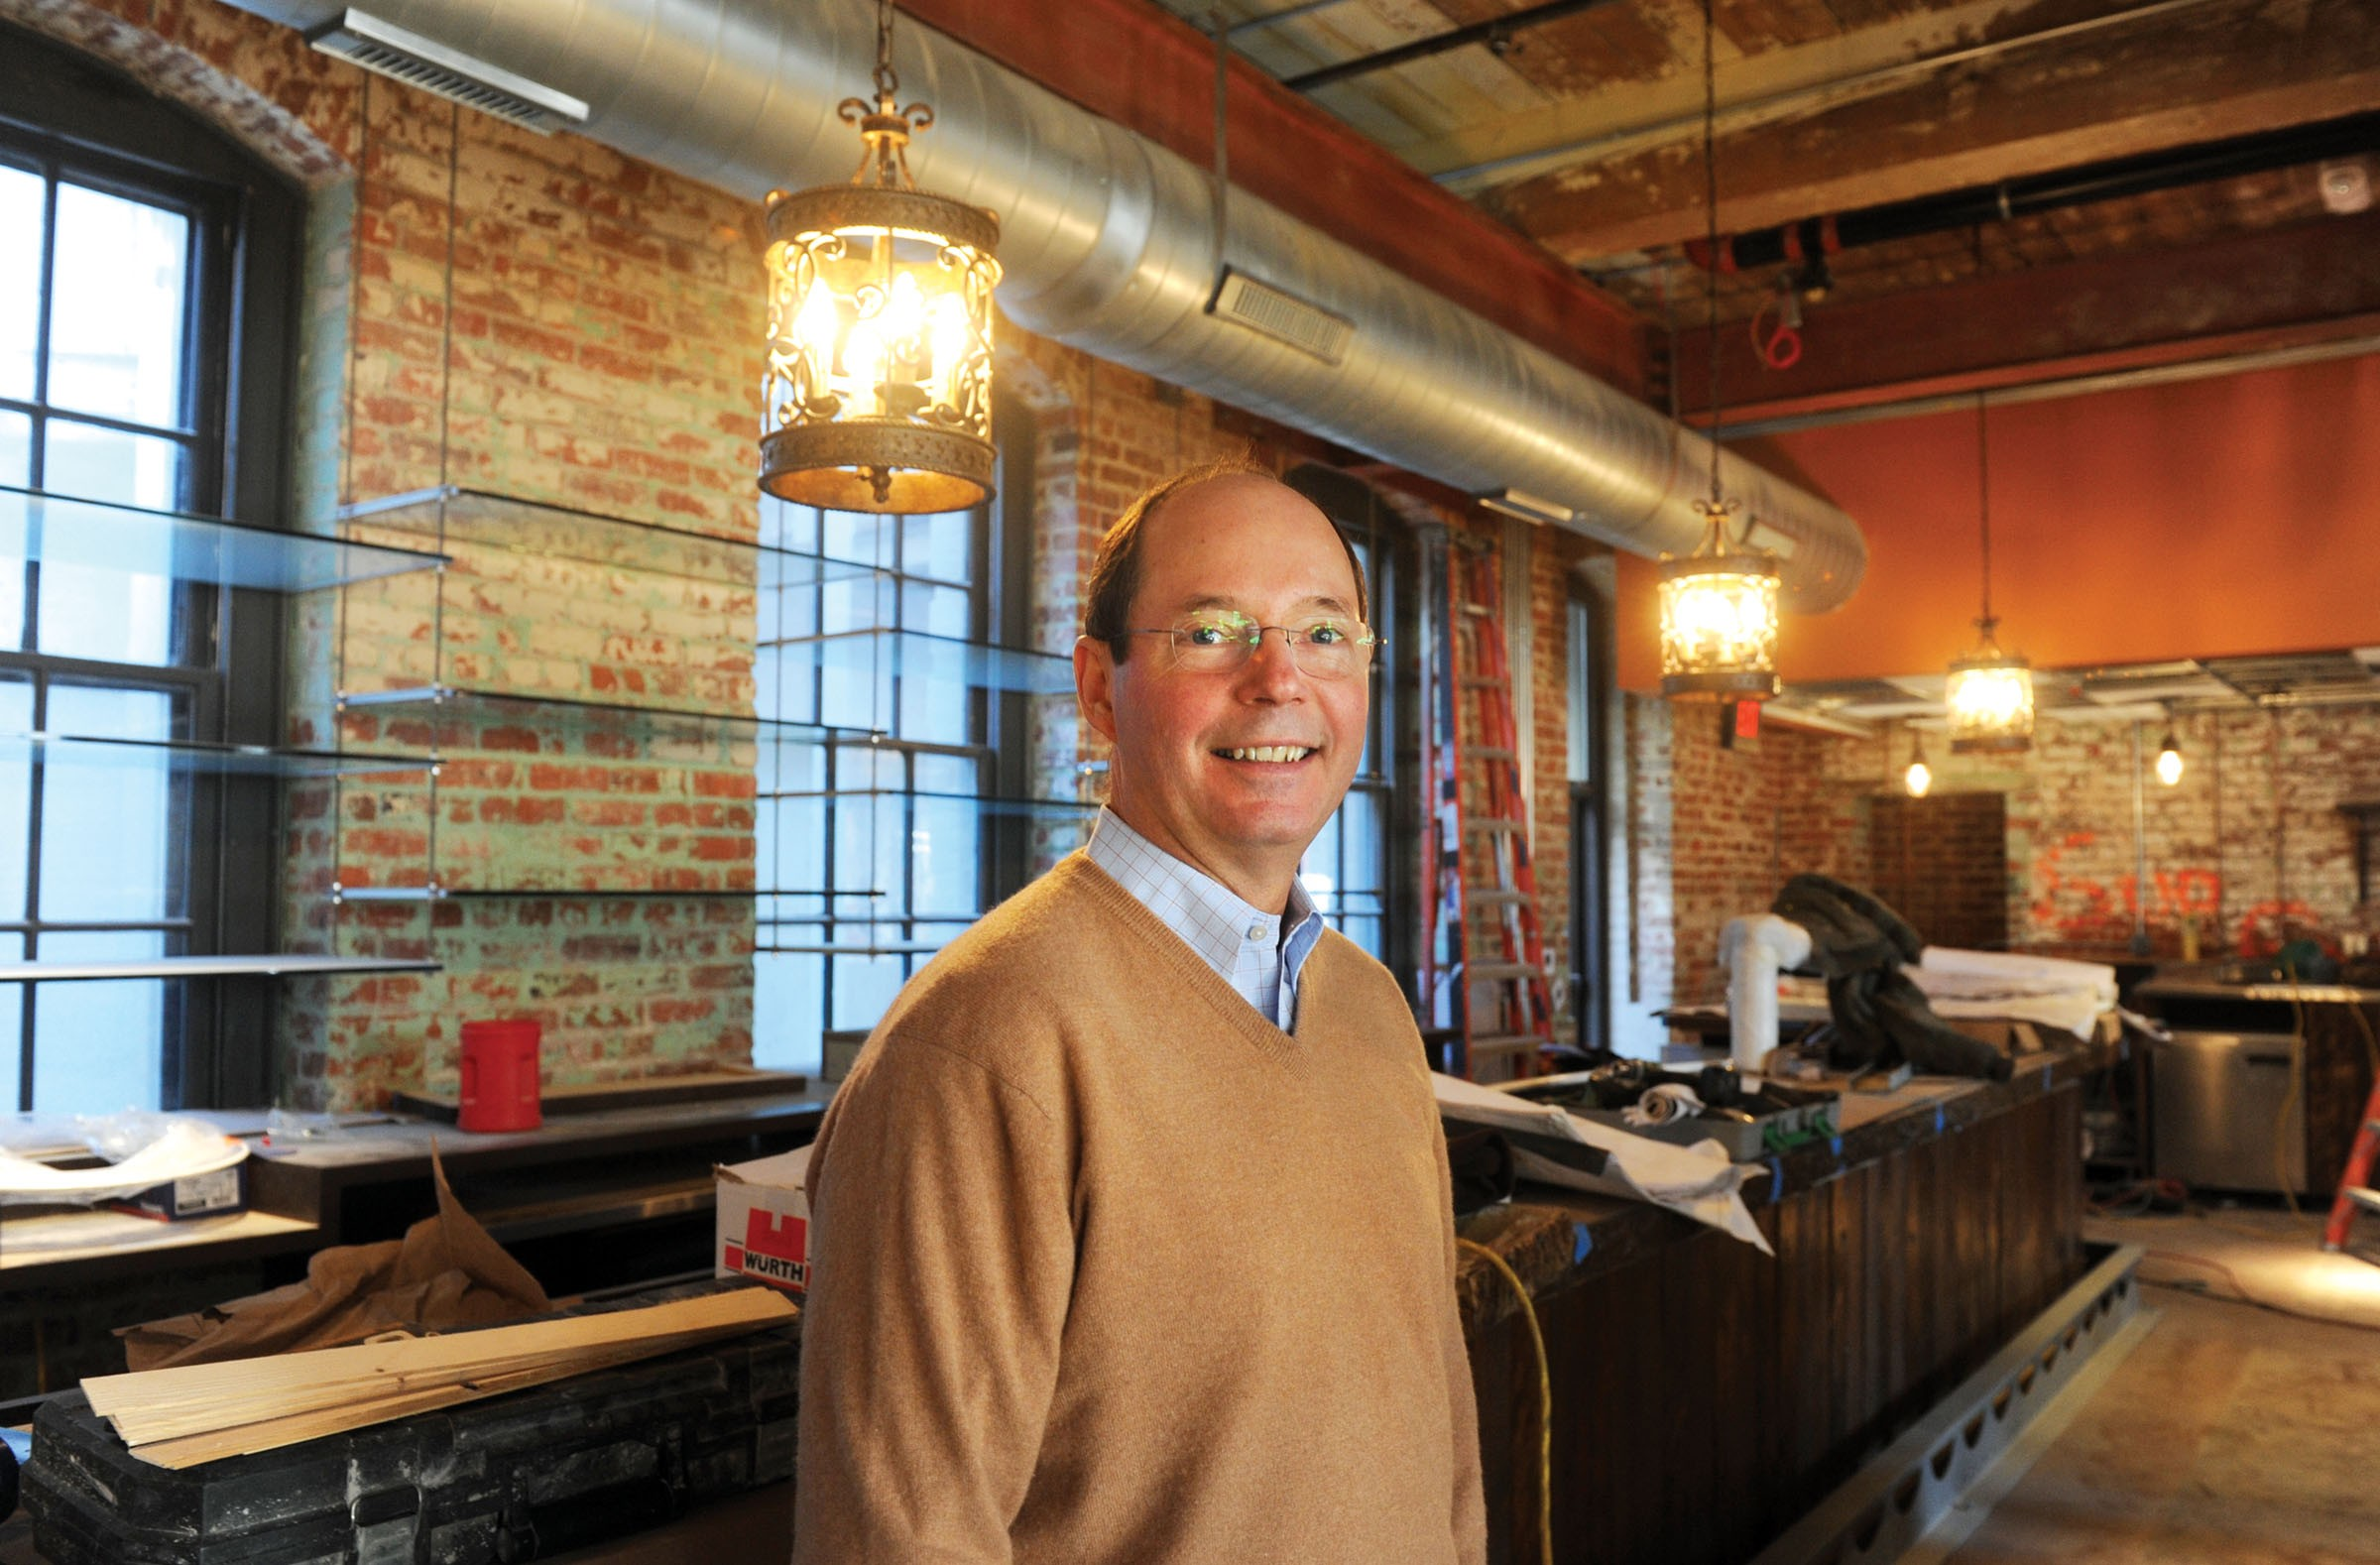 Owner Kevin Healy wants his new upscale Mexican cantina, Casa del Barco, to be part of the social fabric of the Canal Walk area. - SCOTT ELMQUIST